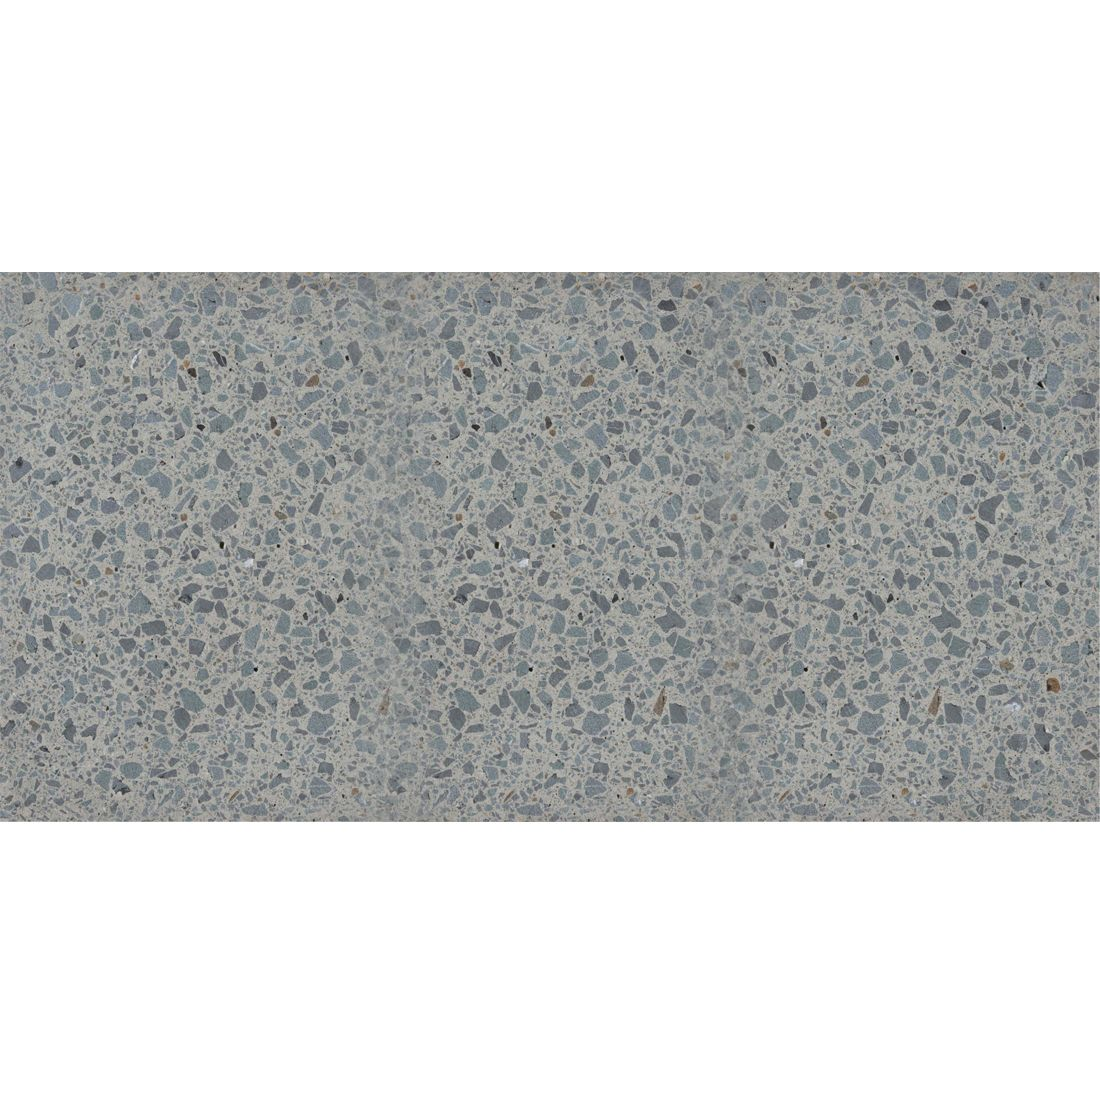 Terrazzo Honed Paver Natural Grey 800 x 400 x 40mm